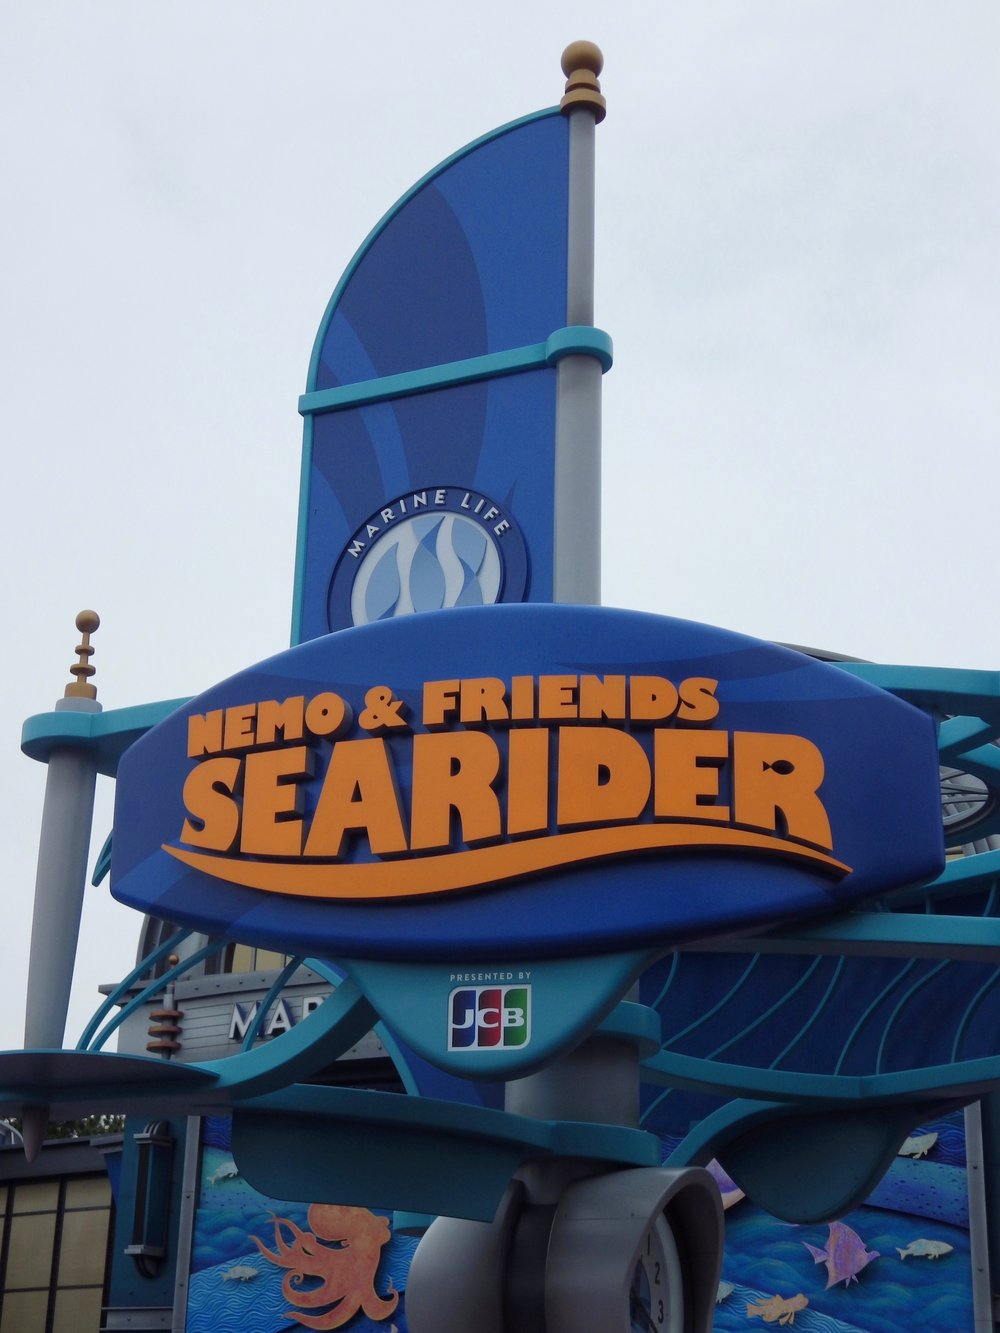 DisneySea-SeaRider-008-3x4.jpg